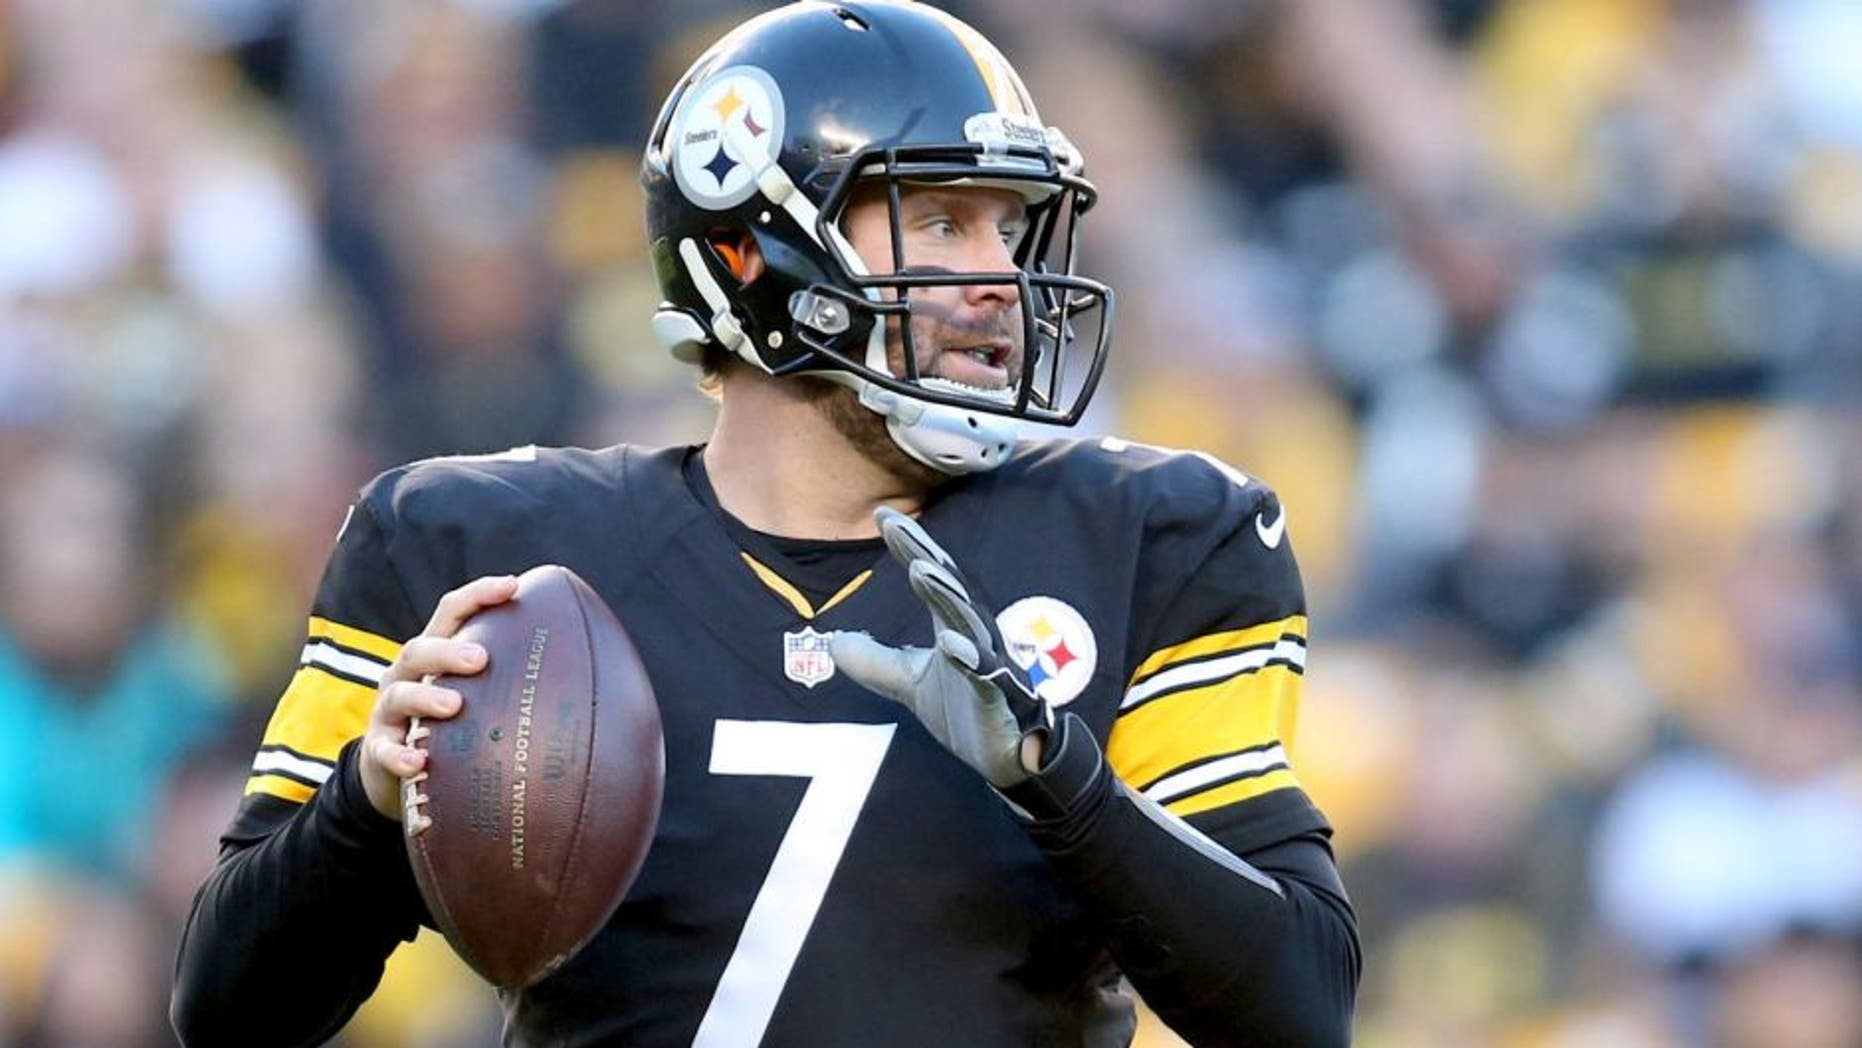 Nov 15, 2015; Pittsburgh, PA, USA; Pittsburgh Steelers quarterback Ben Roethlisberger (7) looks to pass against the Cleveland Browns during the fourth quarter at Heinz Field. The Steelers won 30-9. Mandatory Credit: Charles LeClaire-USA TODAY Sports